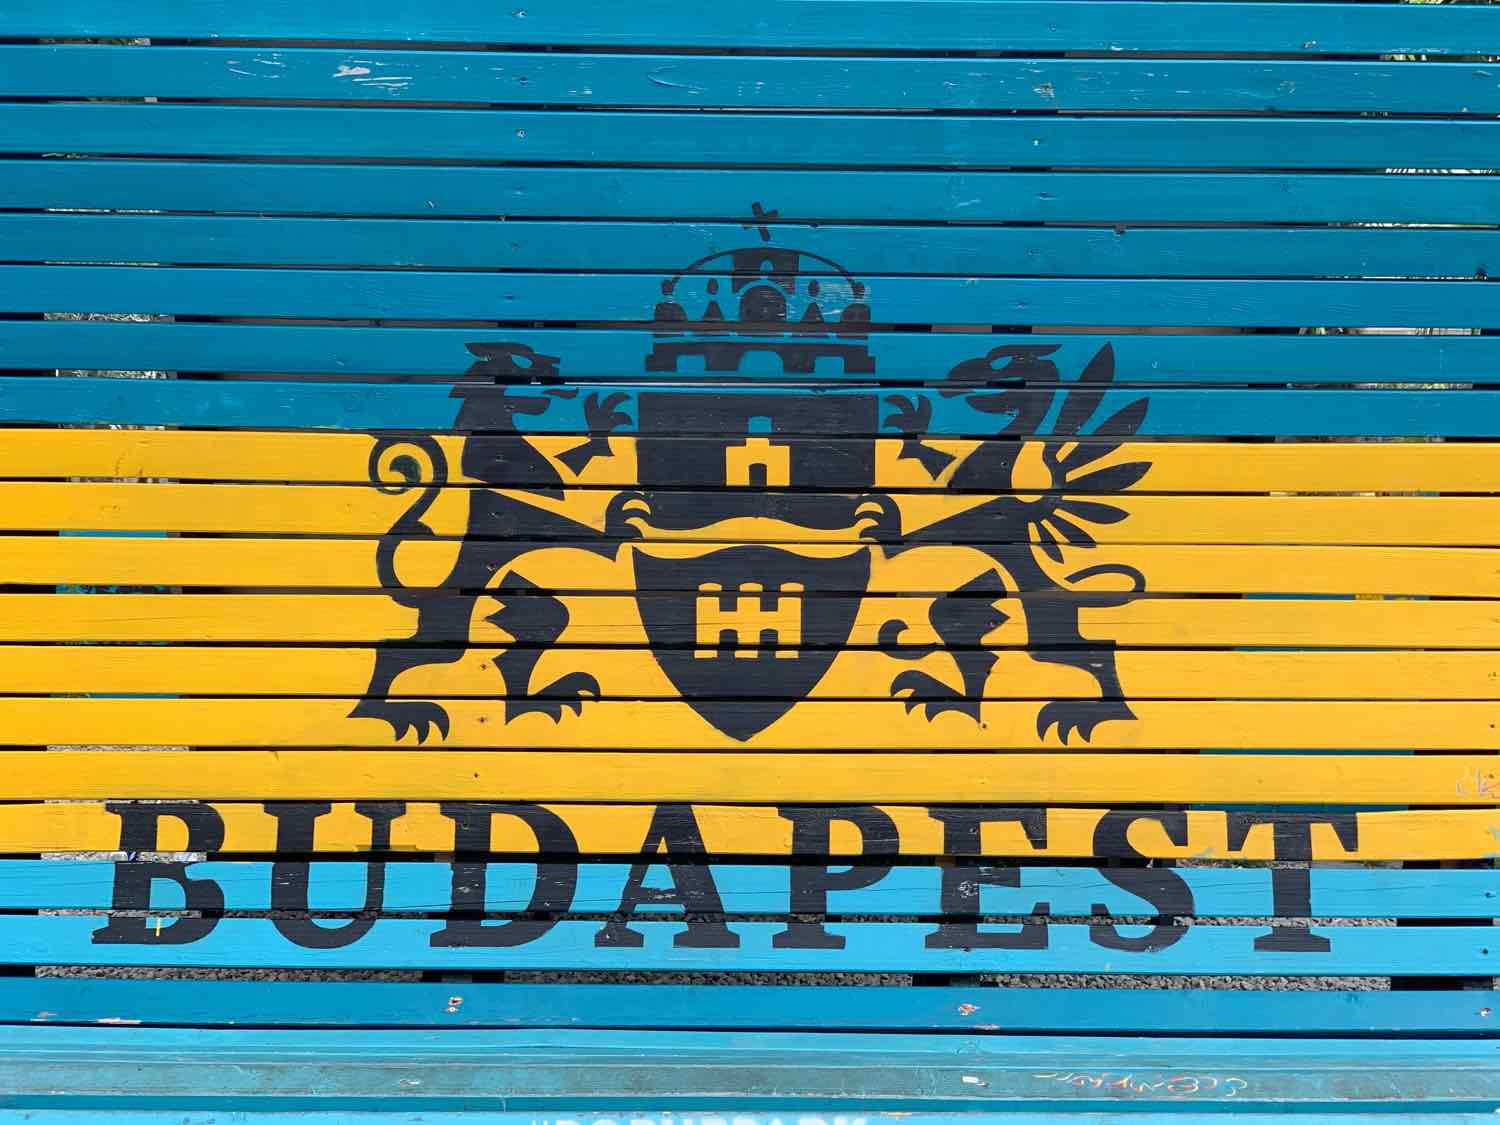 things to do budapest sign